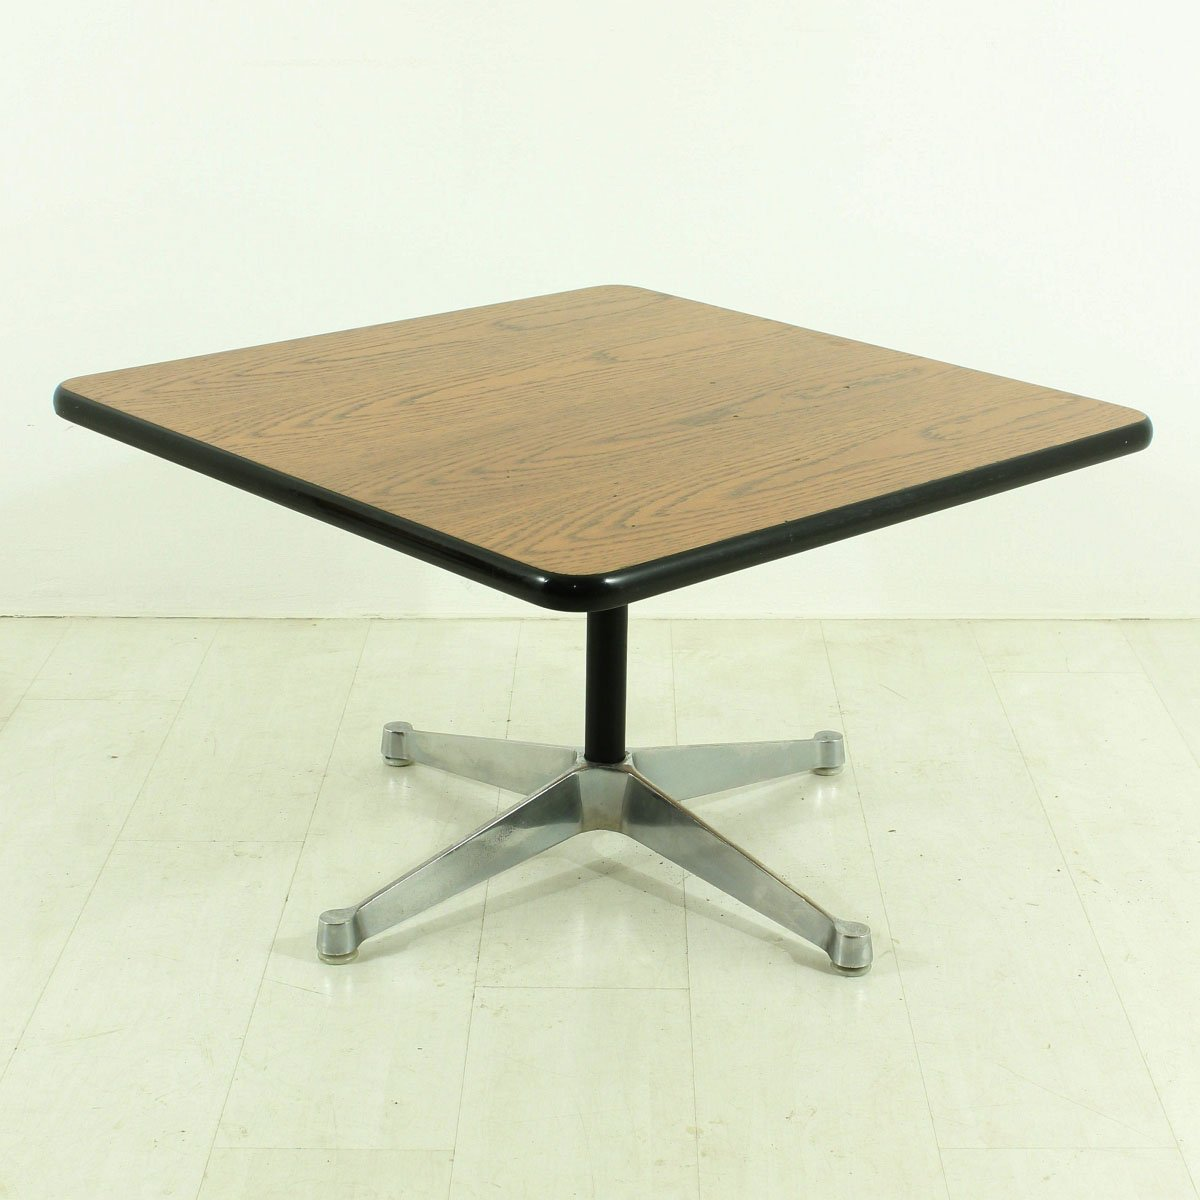 Vintage Four Star Base Coffee Table By Charles & Ray Eames